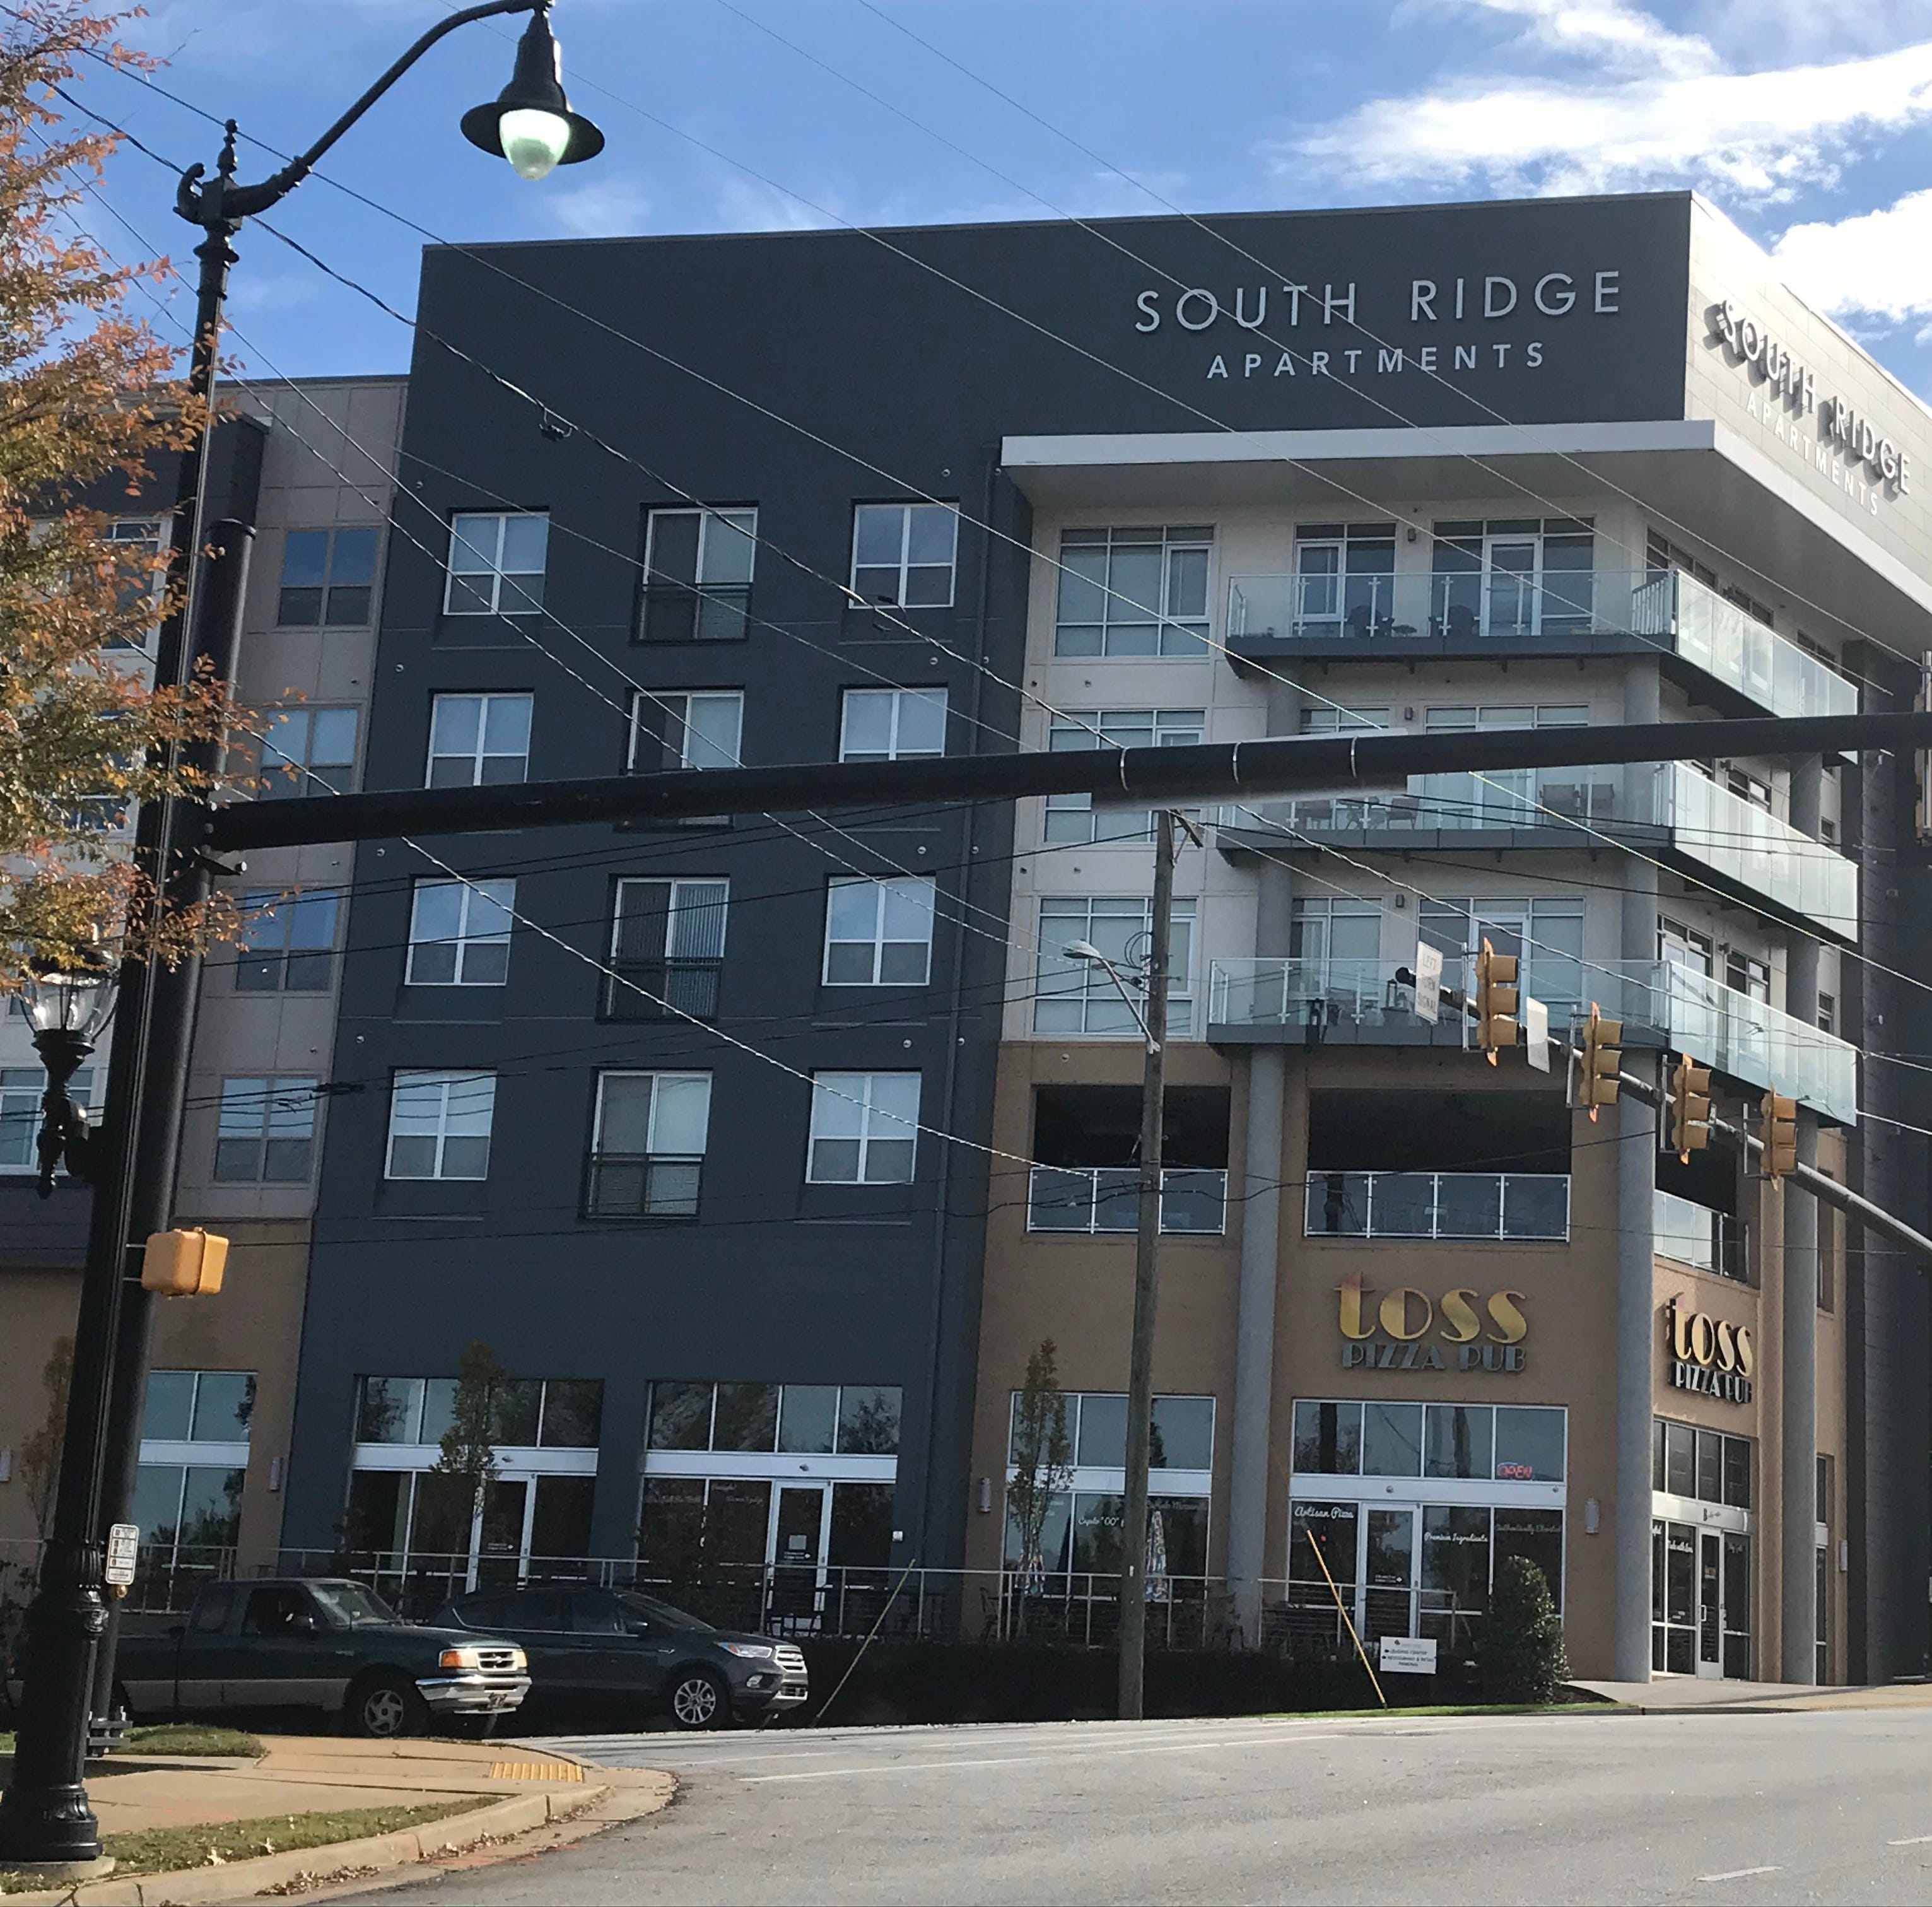 The 10 most valuable properties in downtown Greenville: Apartments lead the way